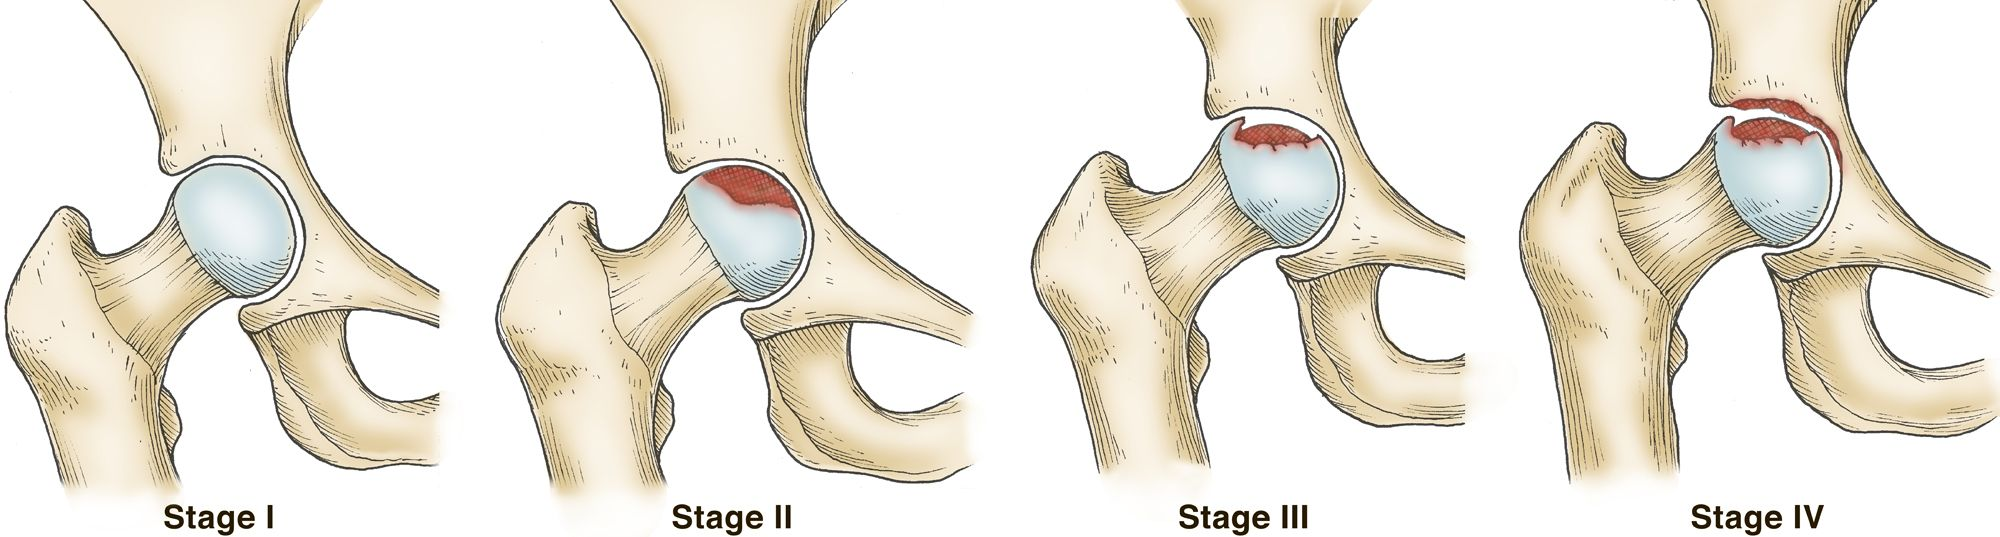 Stages of osteonecrosis of the hip